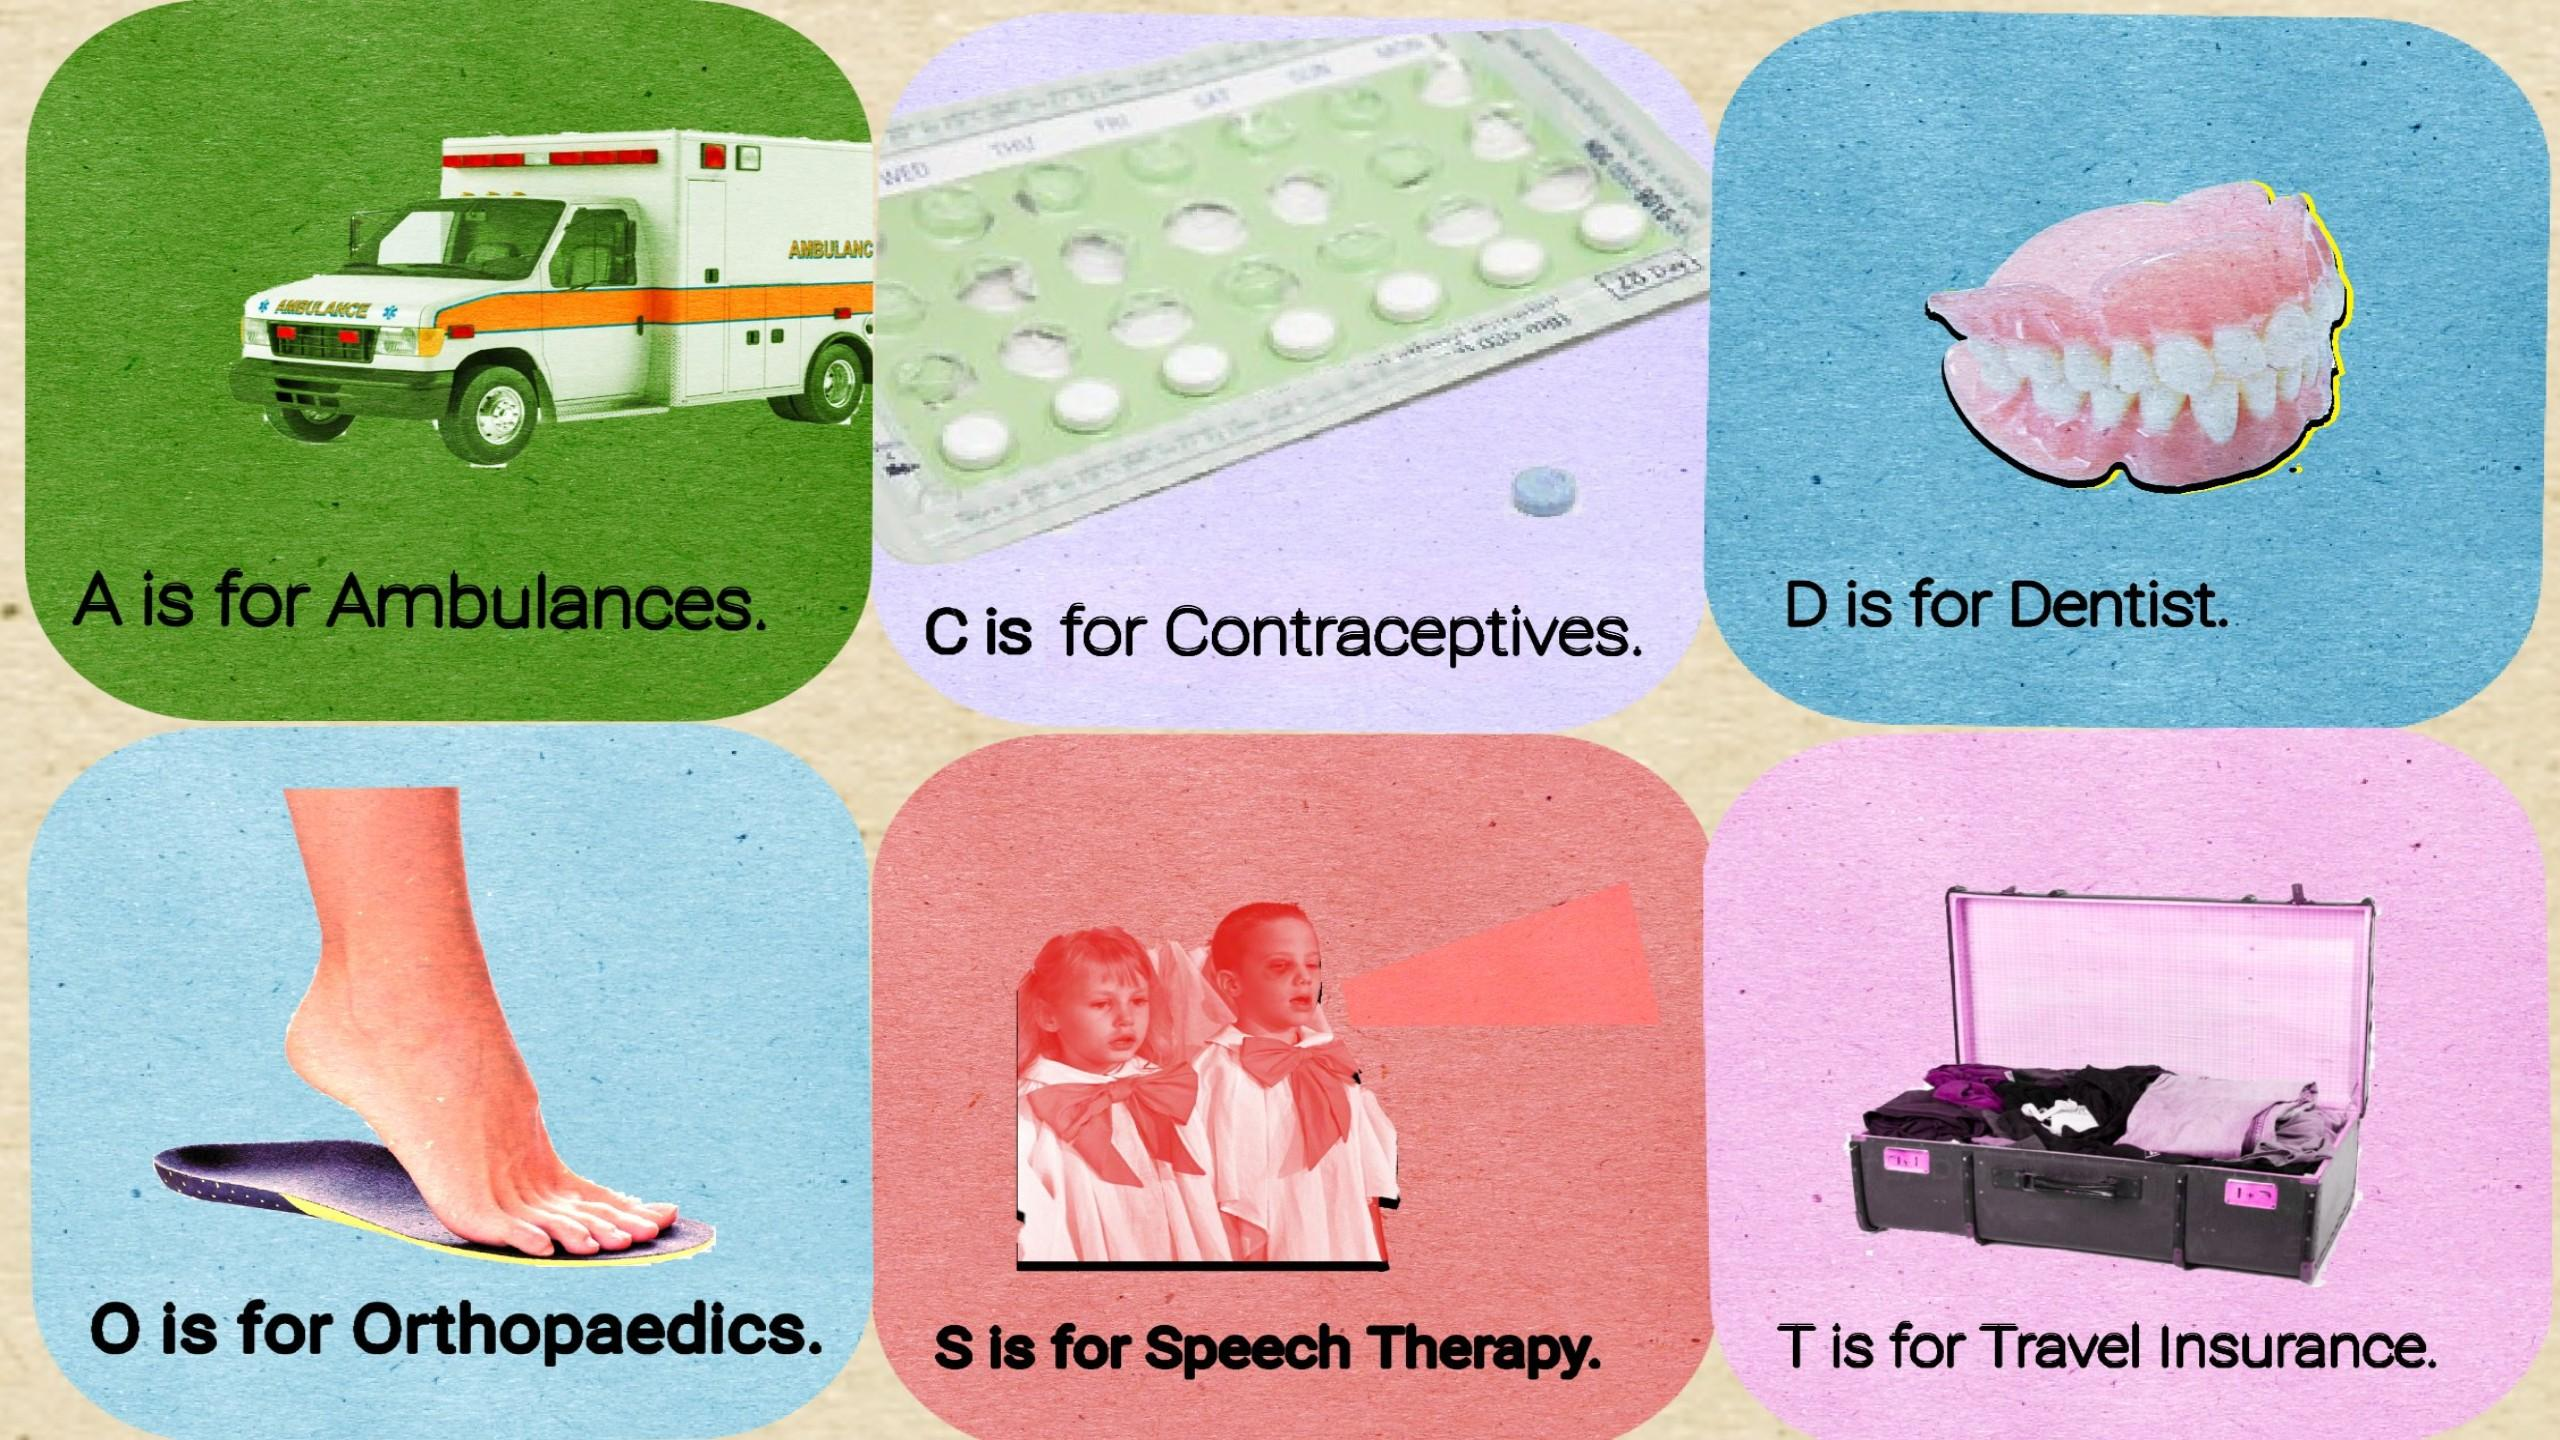 Six cards that associate letters of the alphabet with different health related topics.